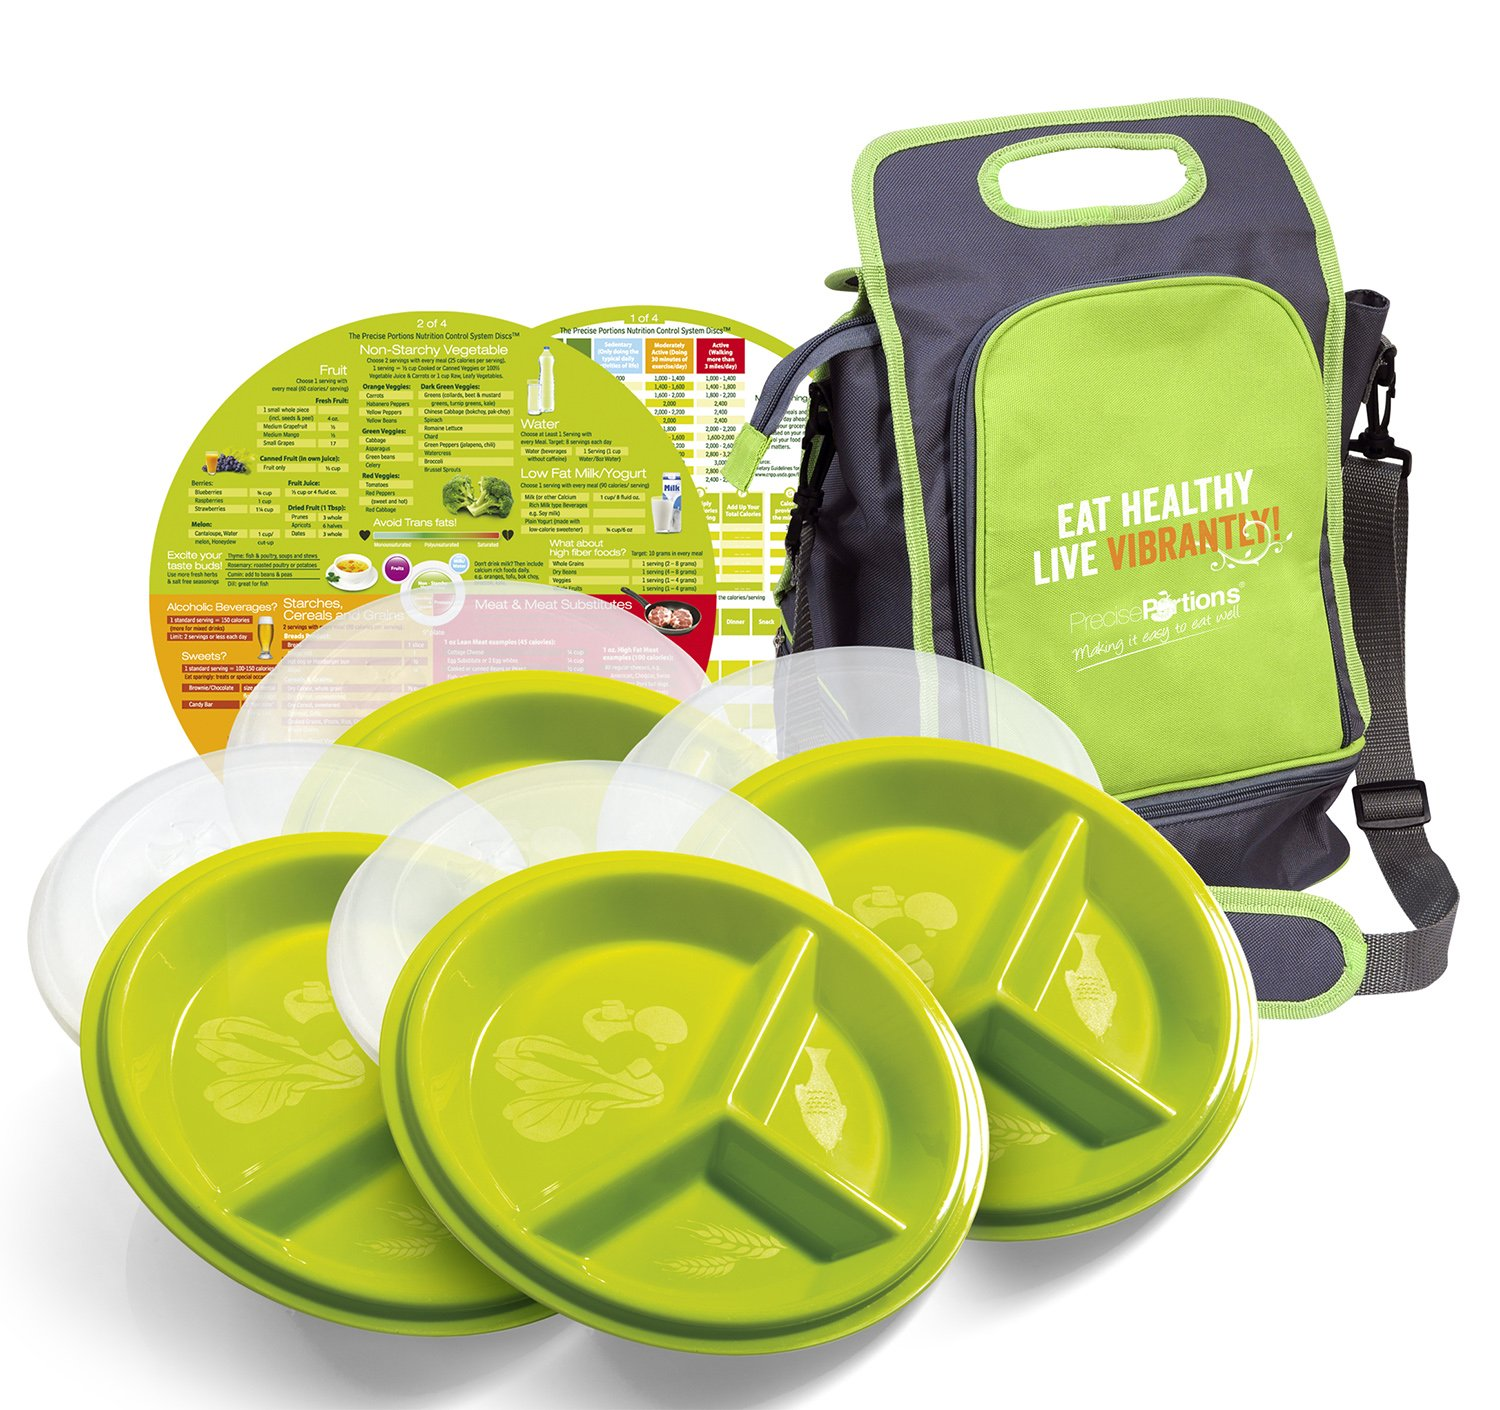 Precise Portions 4 Go-Healthy Store n Go Travel Combo Pack - Includes 4 Lidded, Snap-Tight Travel Plates And A Lunch Bag for Diabetes & Healthy Diet